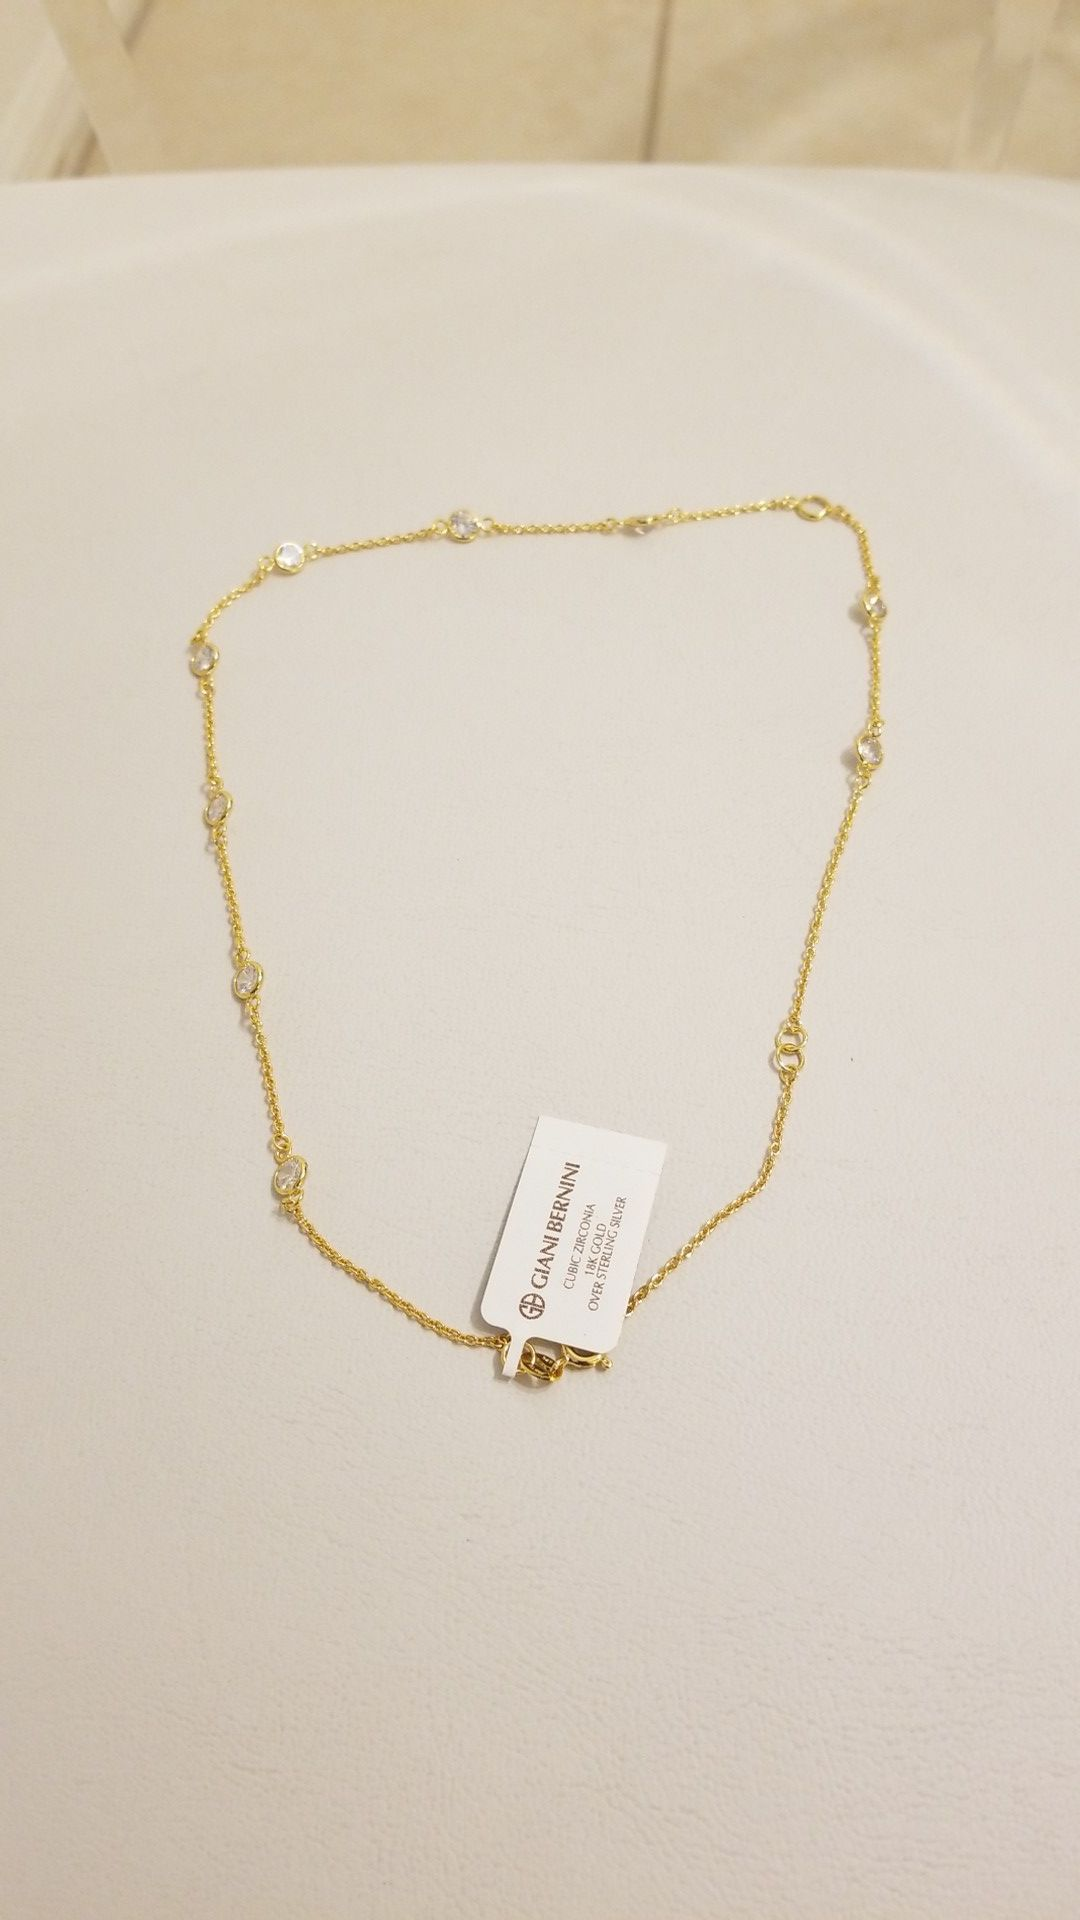 18K Gold Over Sterling Silver Necklace